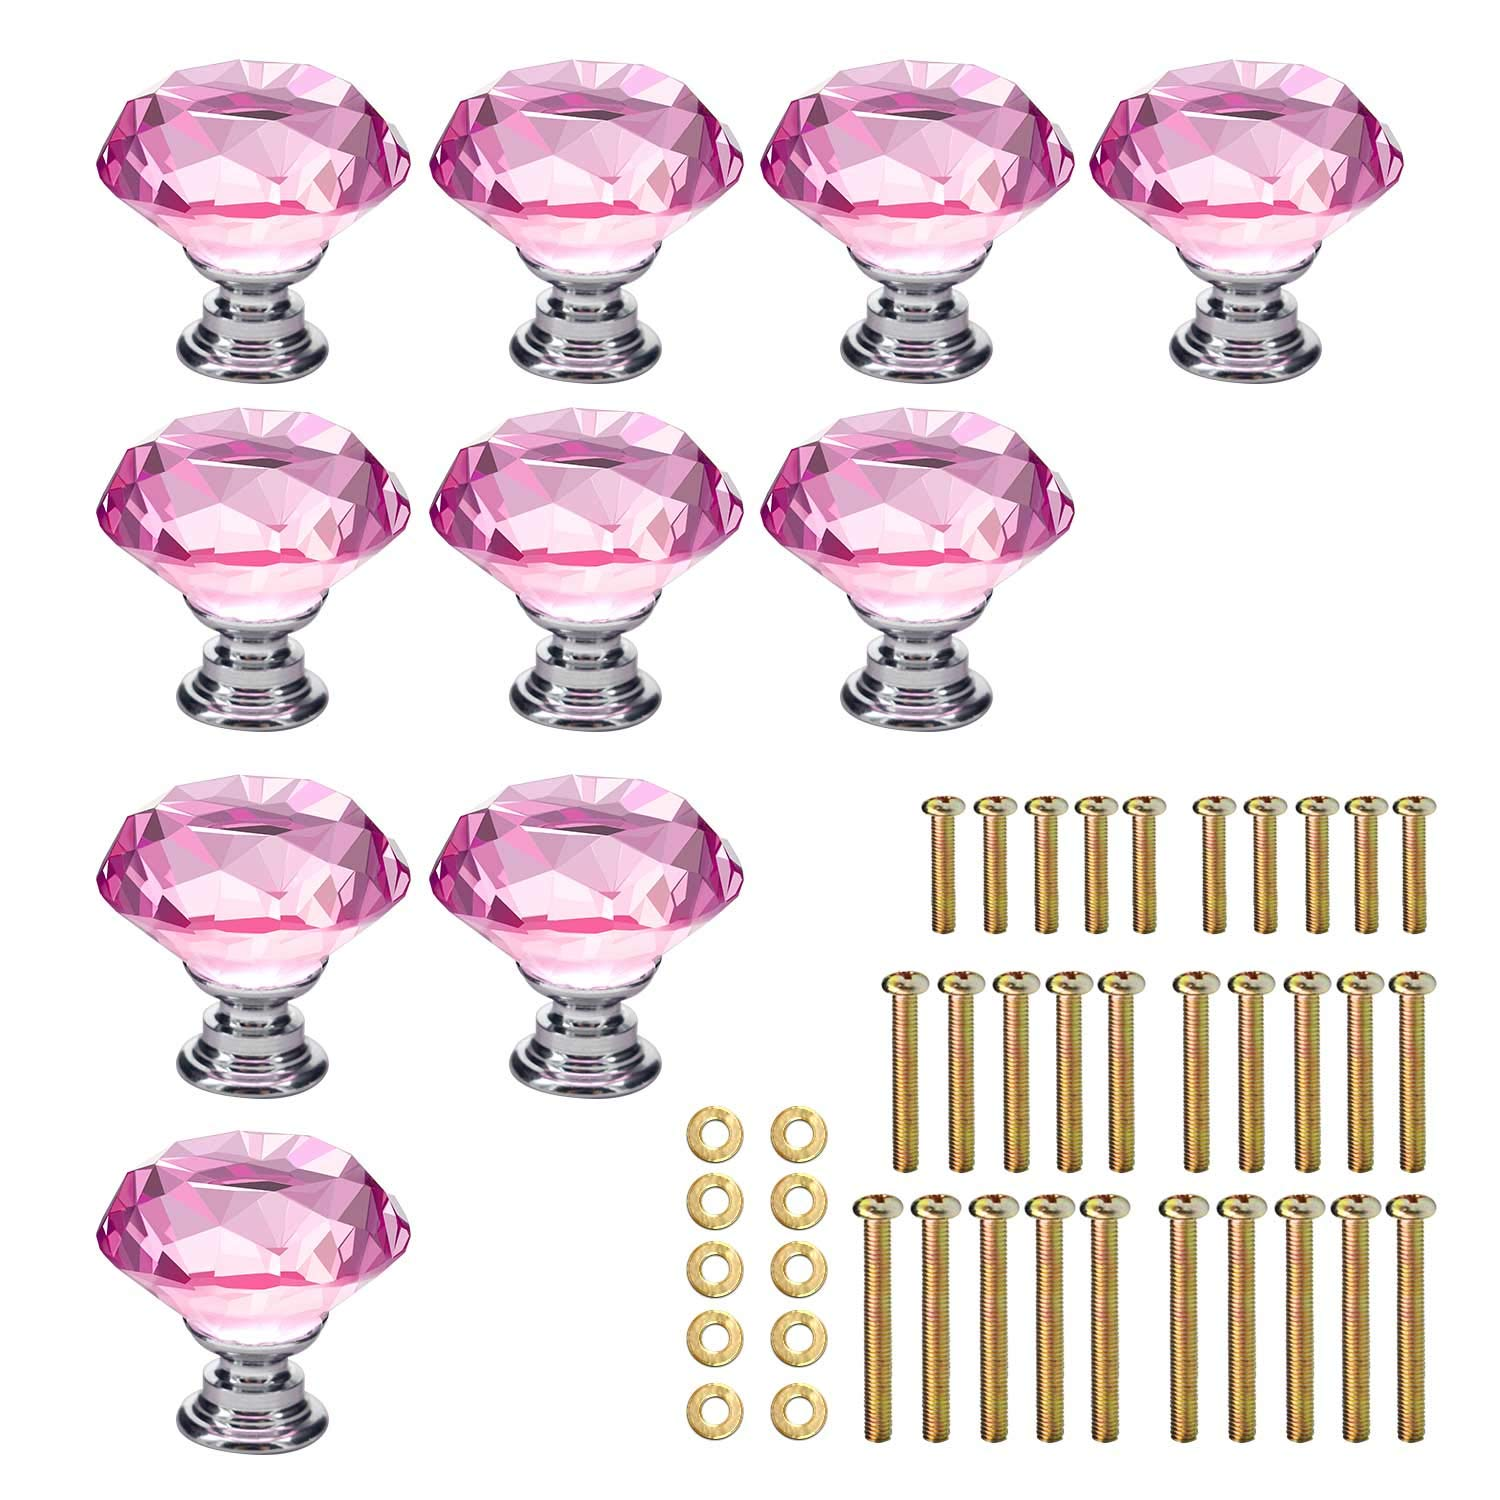 KEIVA 10pcs Diamond Shape Crystal Glass 30mm Drawer Knob Pink Pull Handle Usd for Cabinet Drawer Cupboard Chest Dresser with 3 kinds of Screws (30mm, Pink)